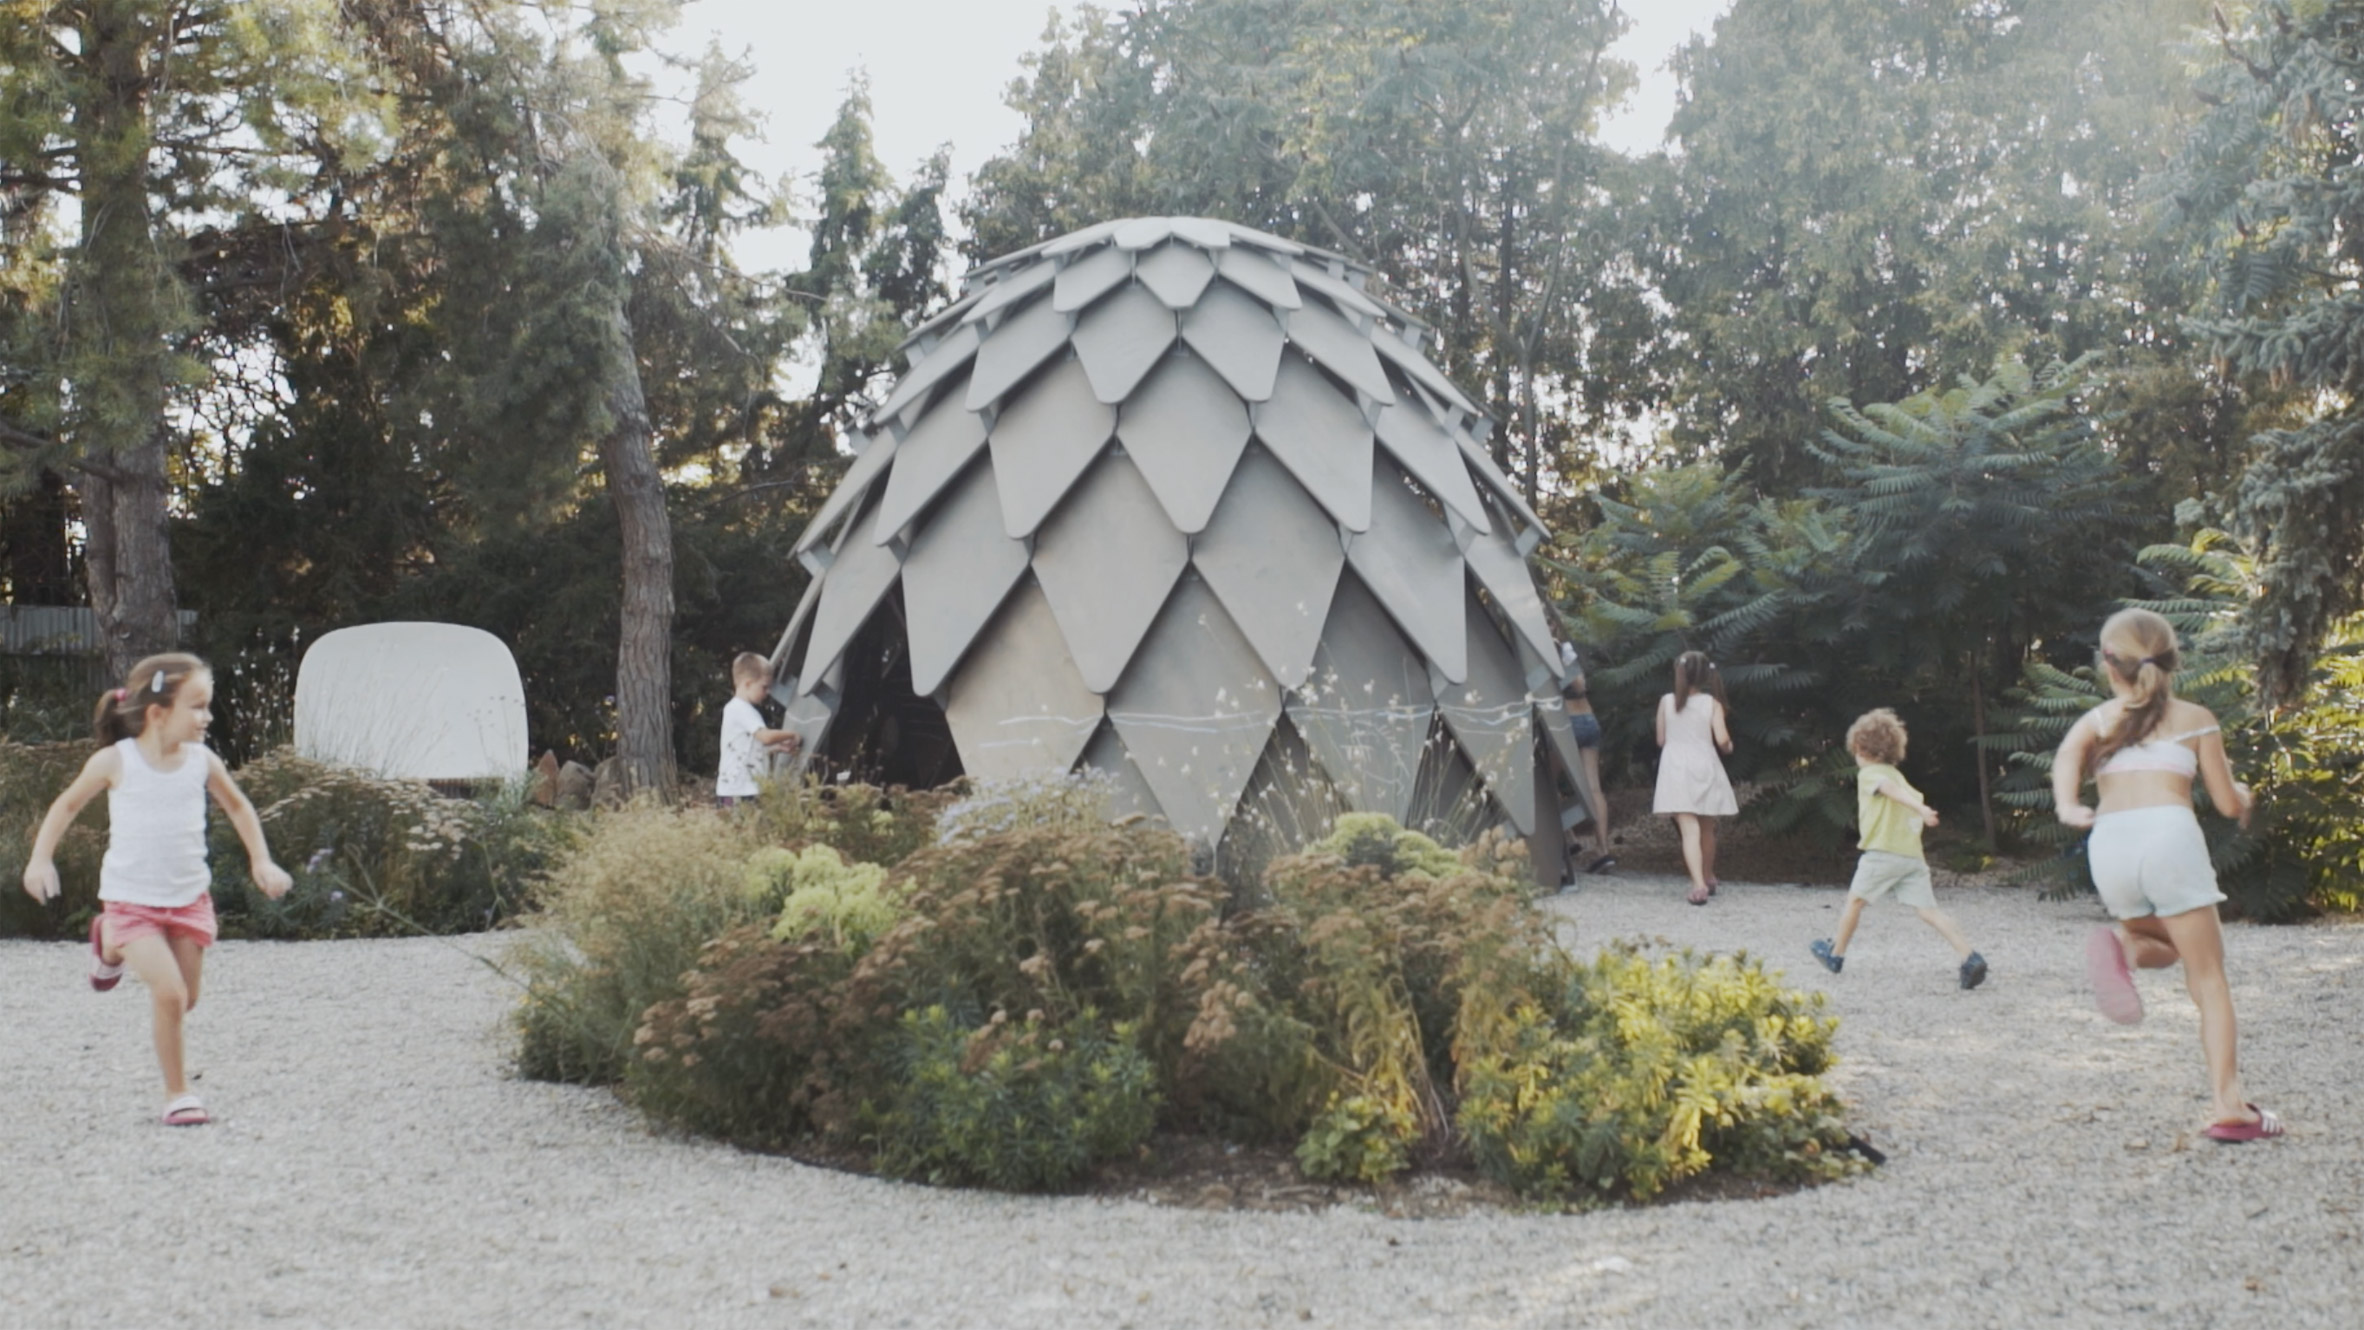 Pinecone-shaped pavilion can be used for outdoor classes and campfires